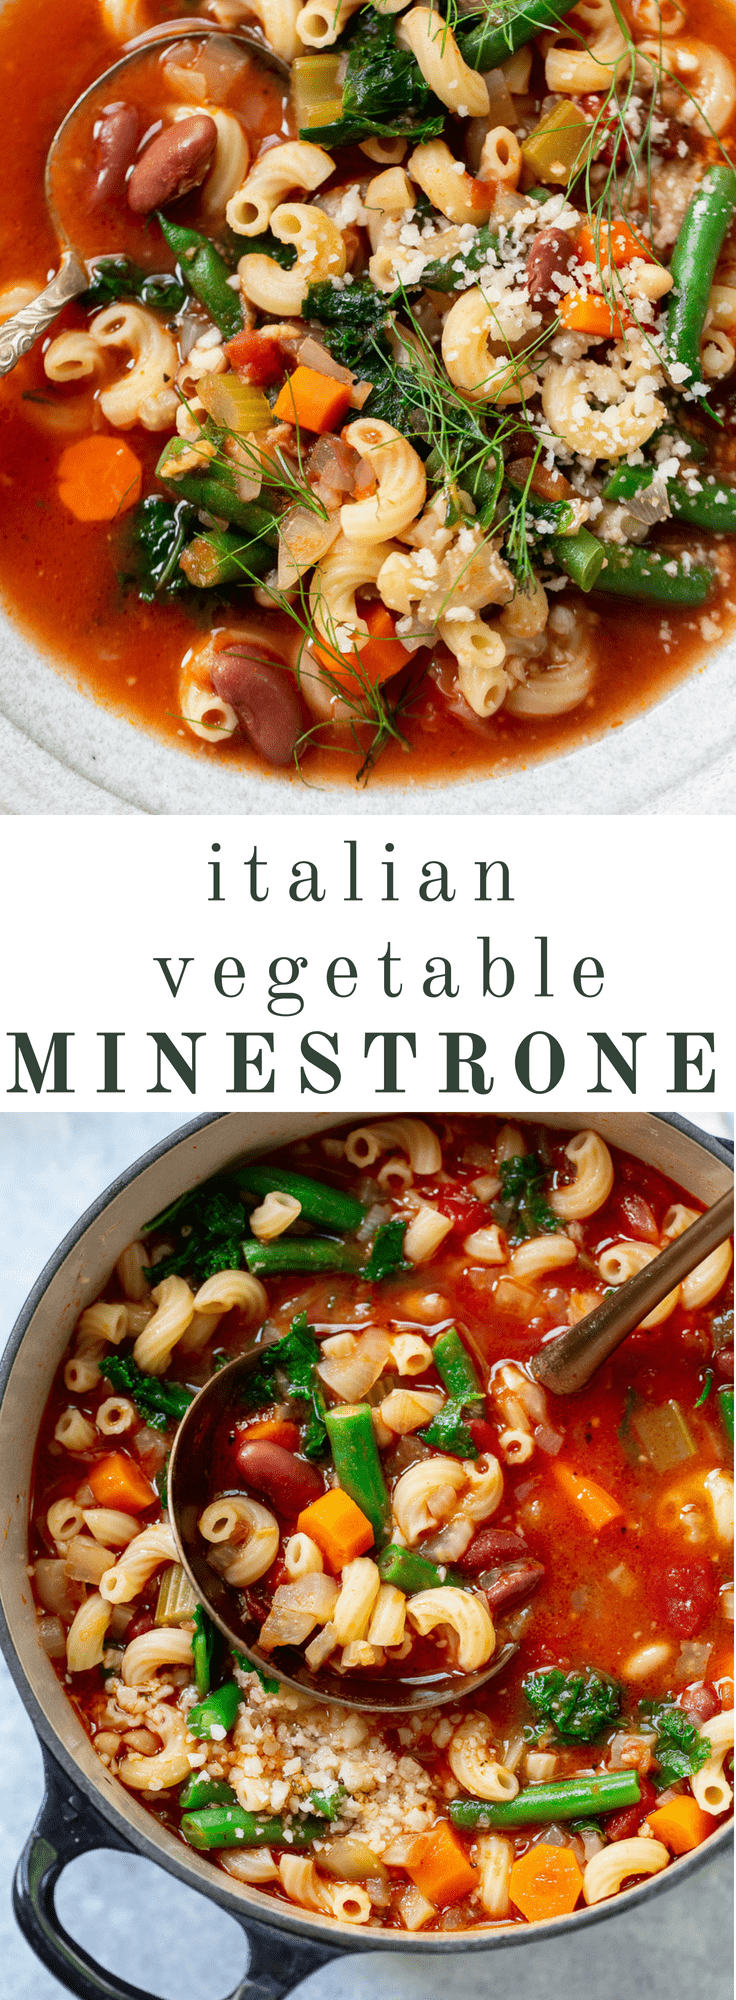 Easy Italian Vegetable Minestrone Soup